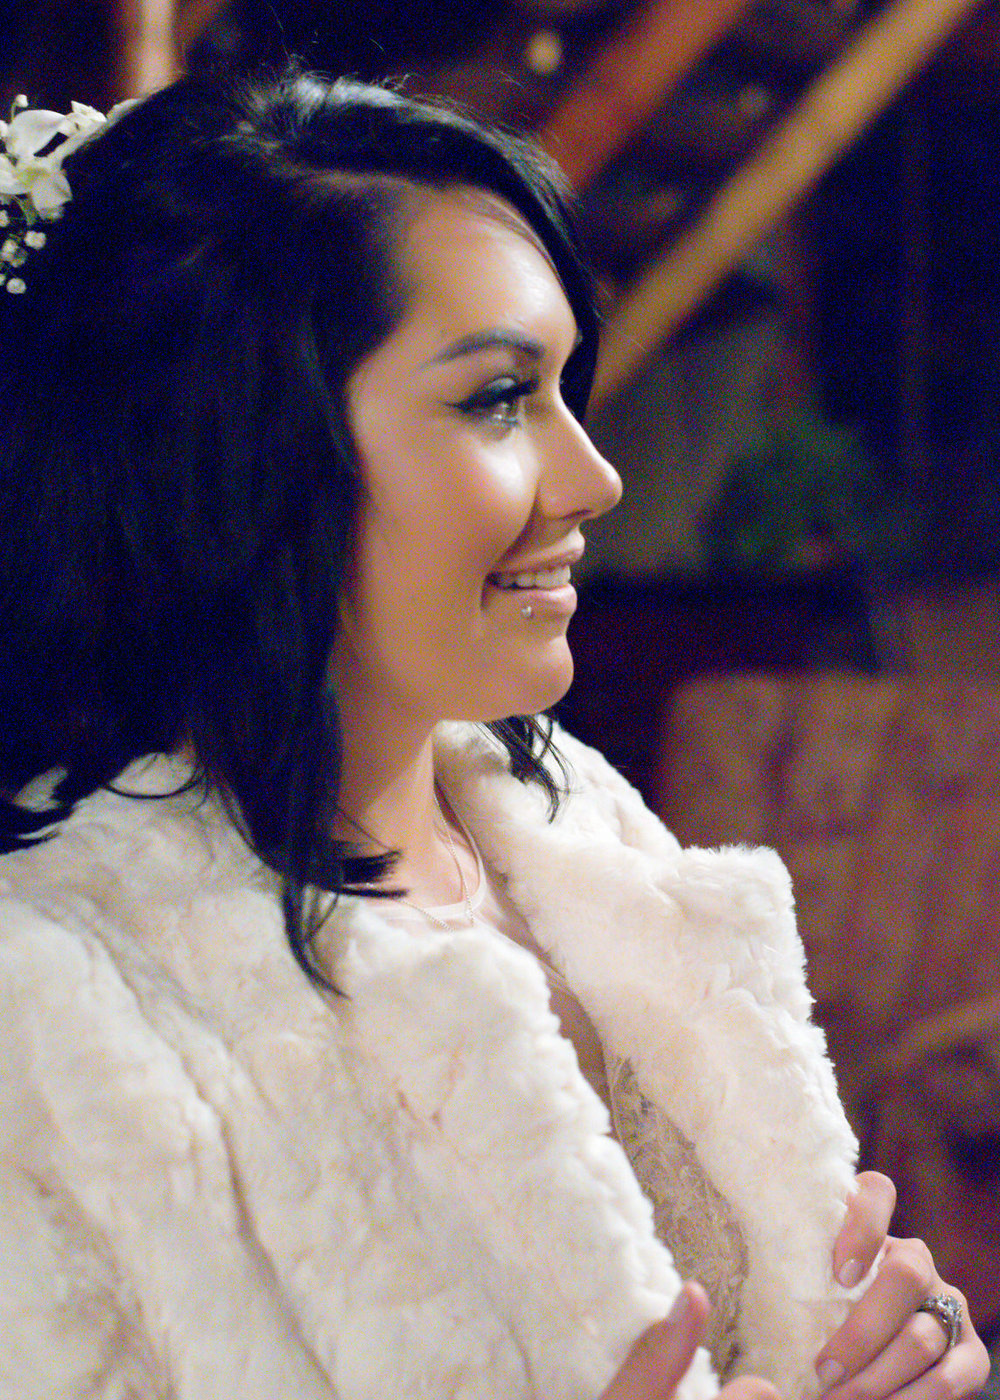 Rustic Winter Wedding Kiana Lodge Poulsbo Rainy Day-69.jpg